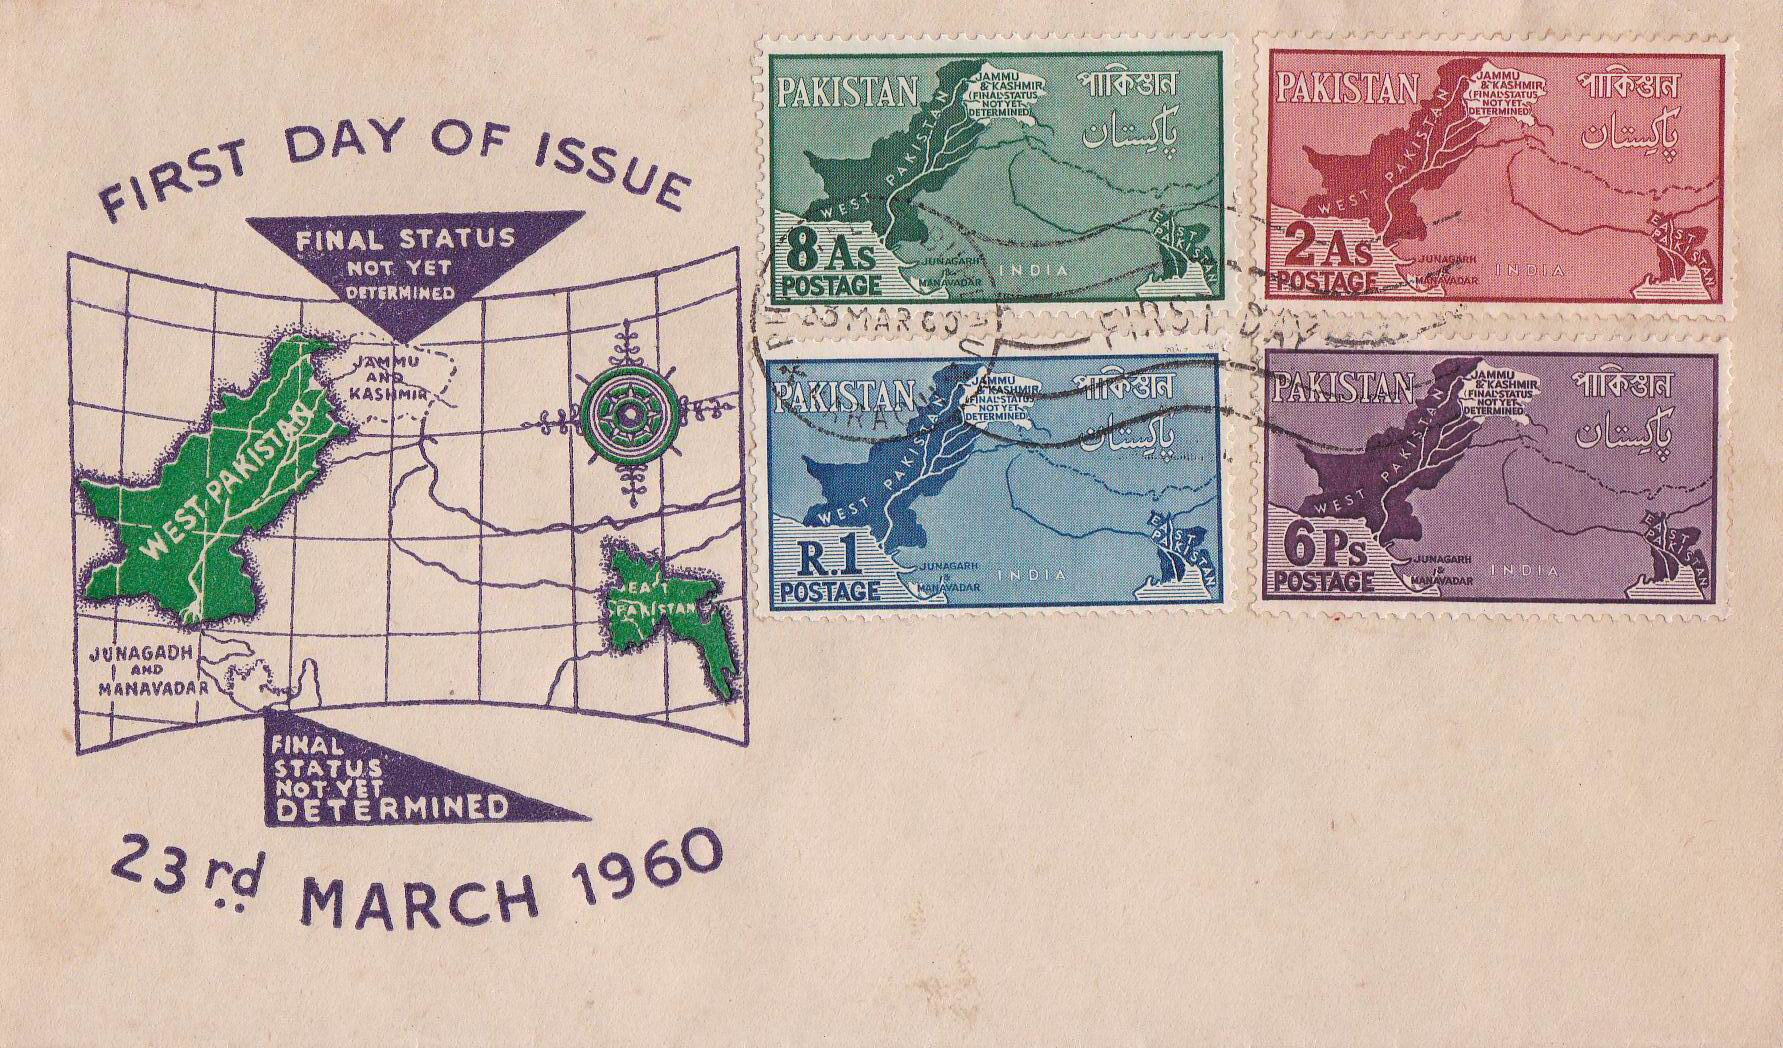 Pakistan Fdc 1960 Kashmir As Disputed Territory Map Junagarh 11